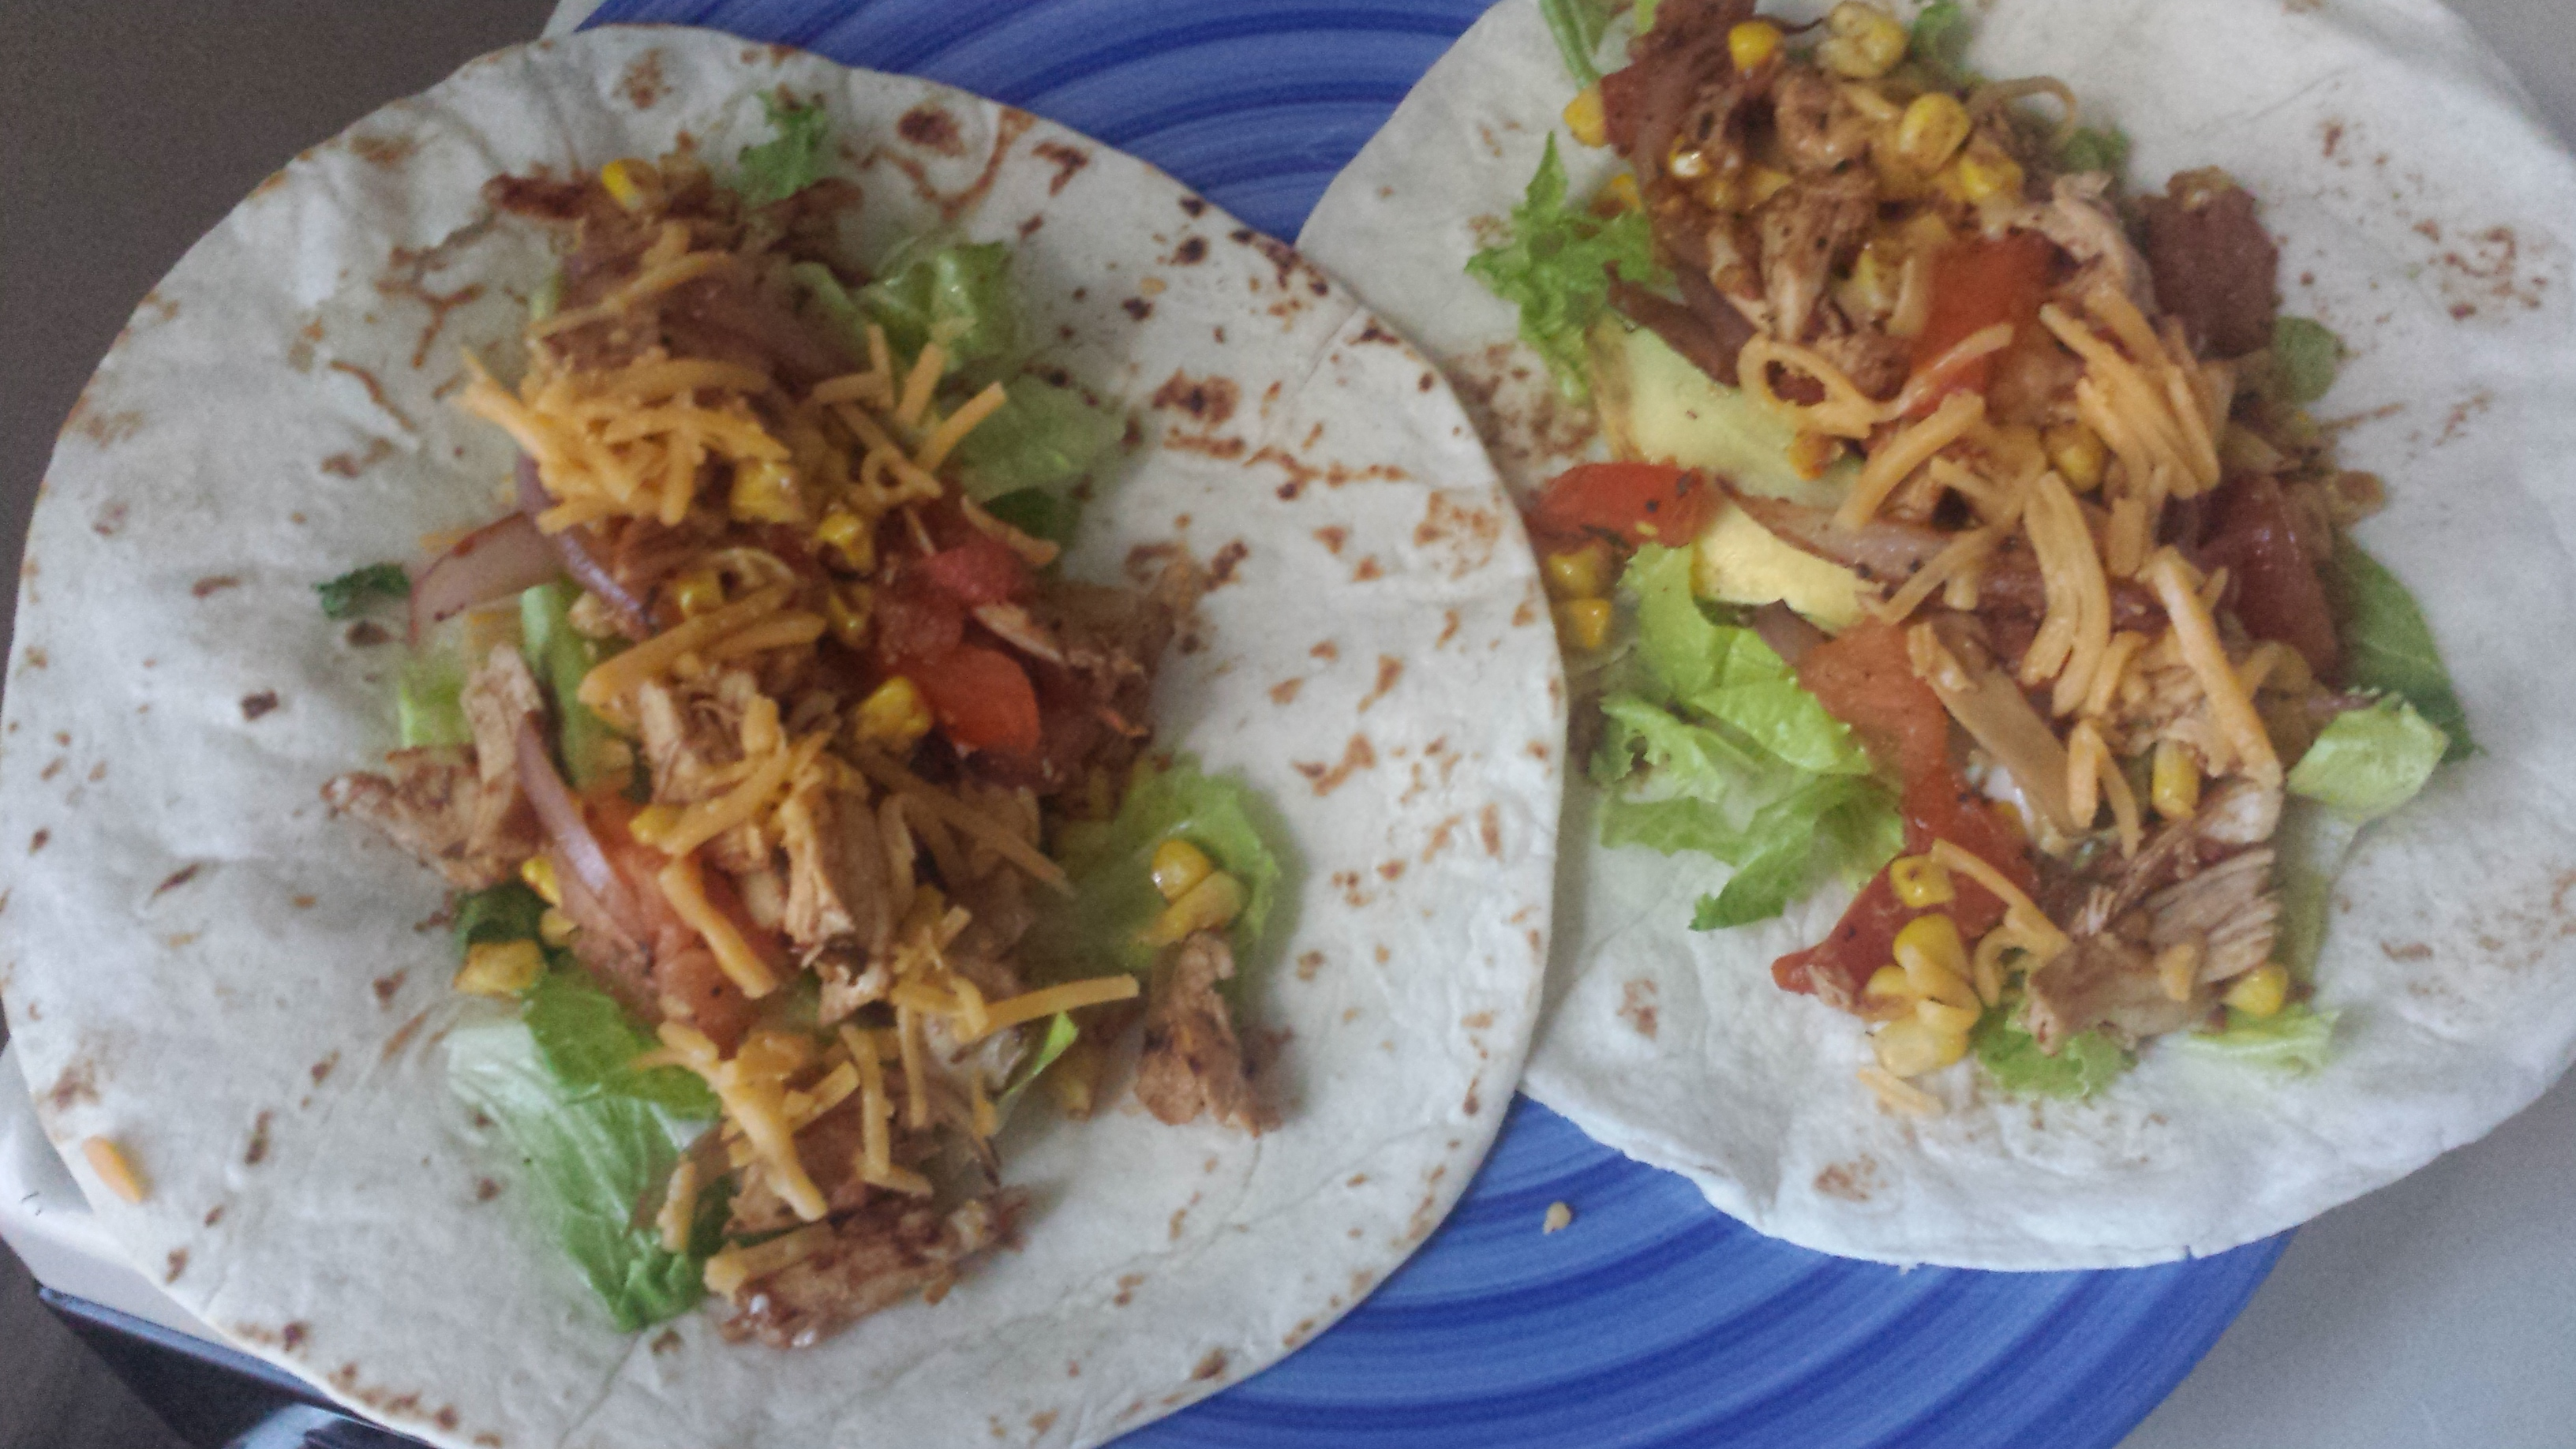 Lunch/Dinner CaliMex wraps